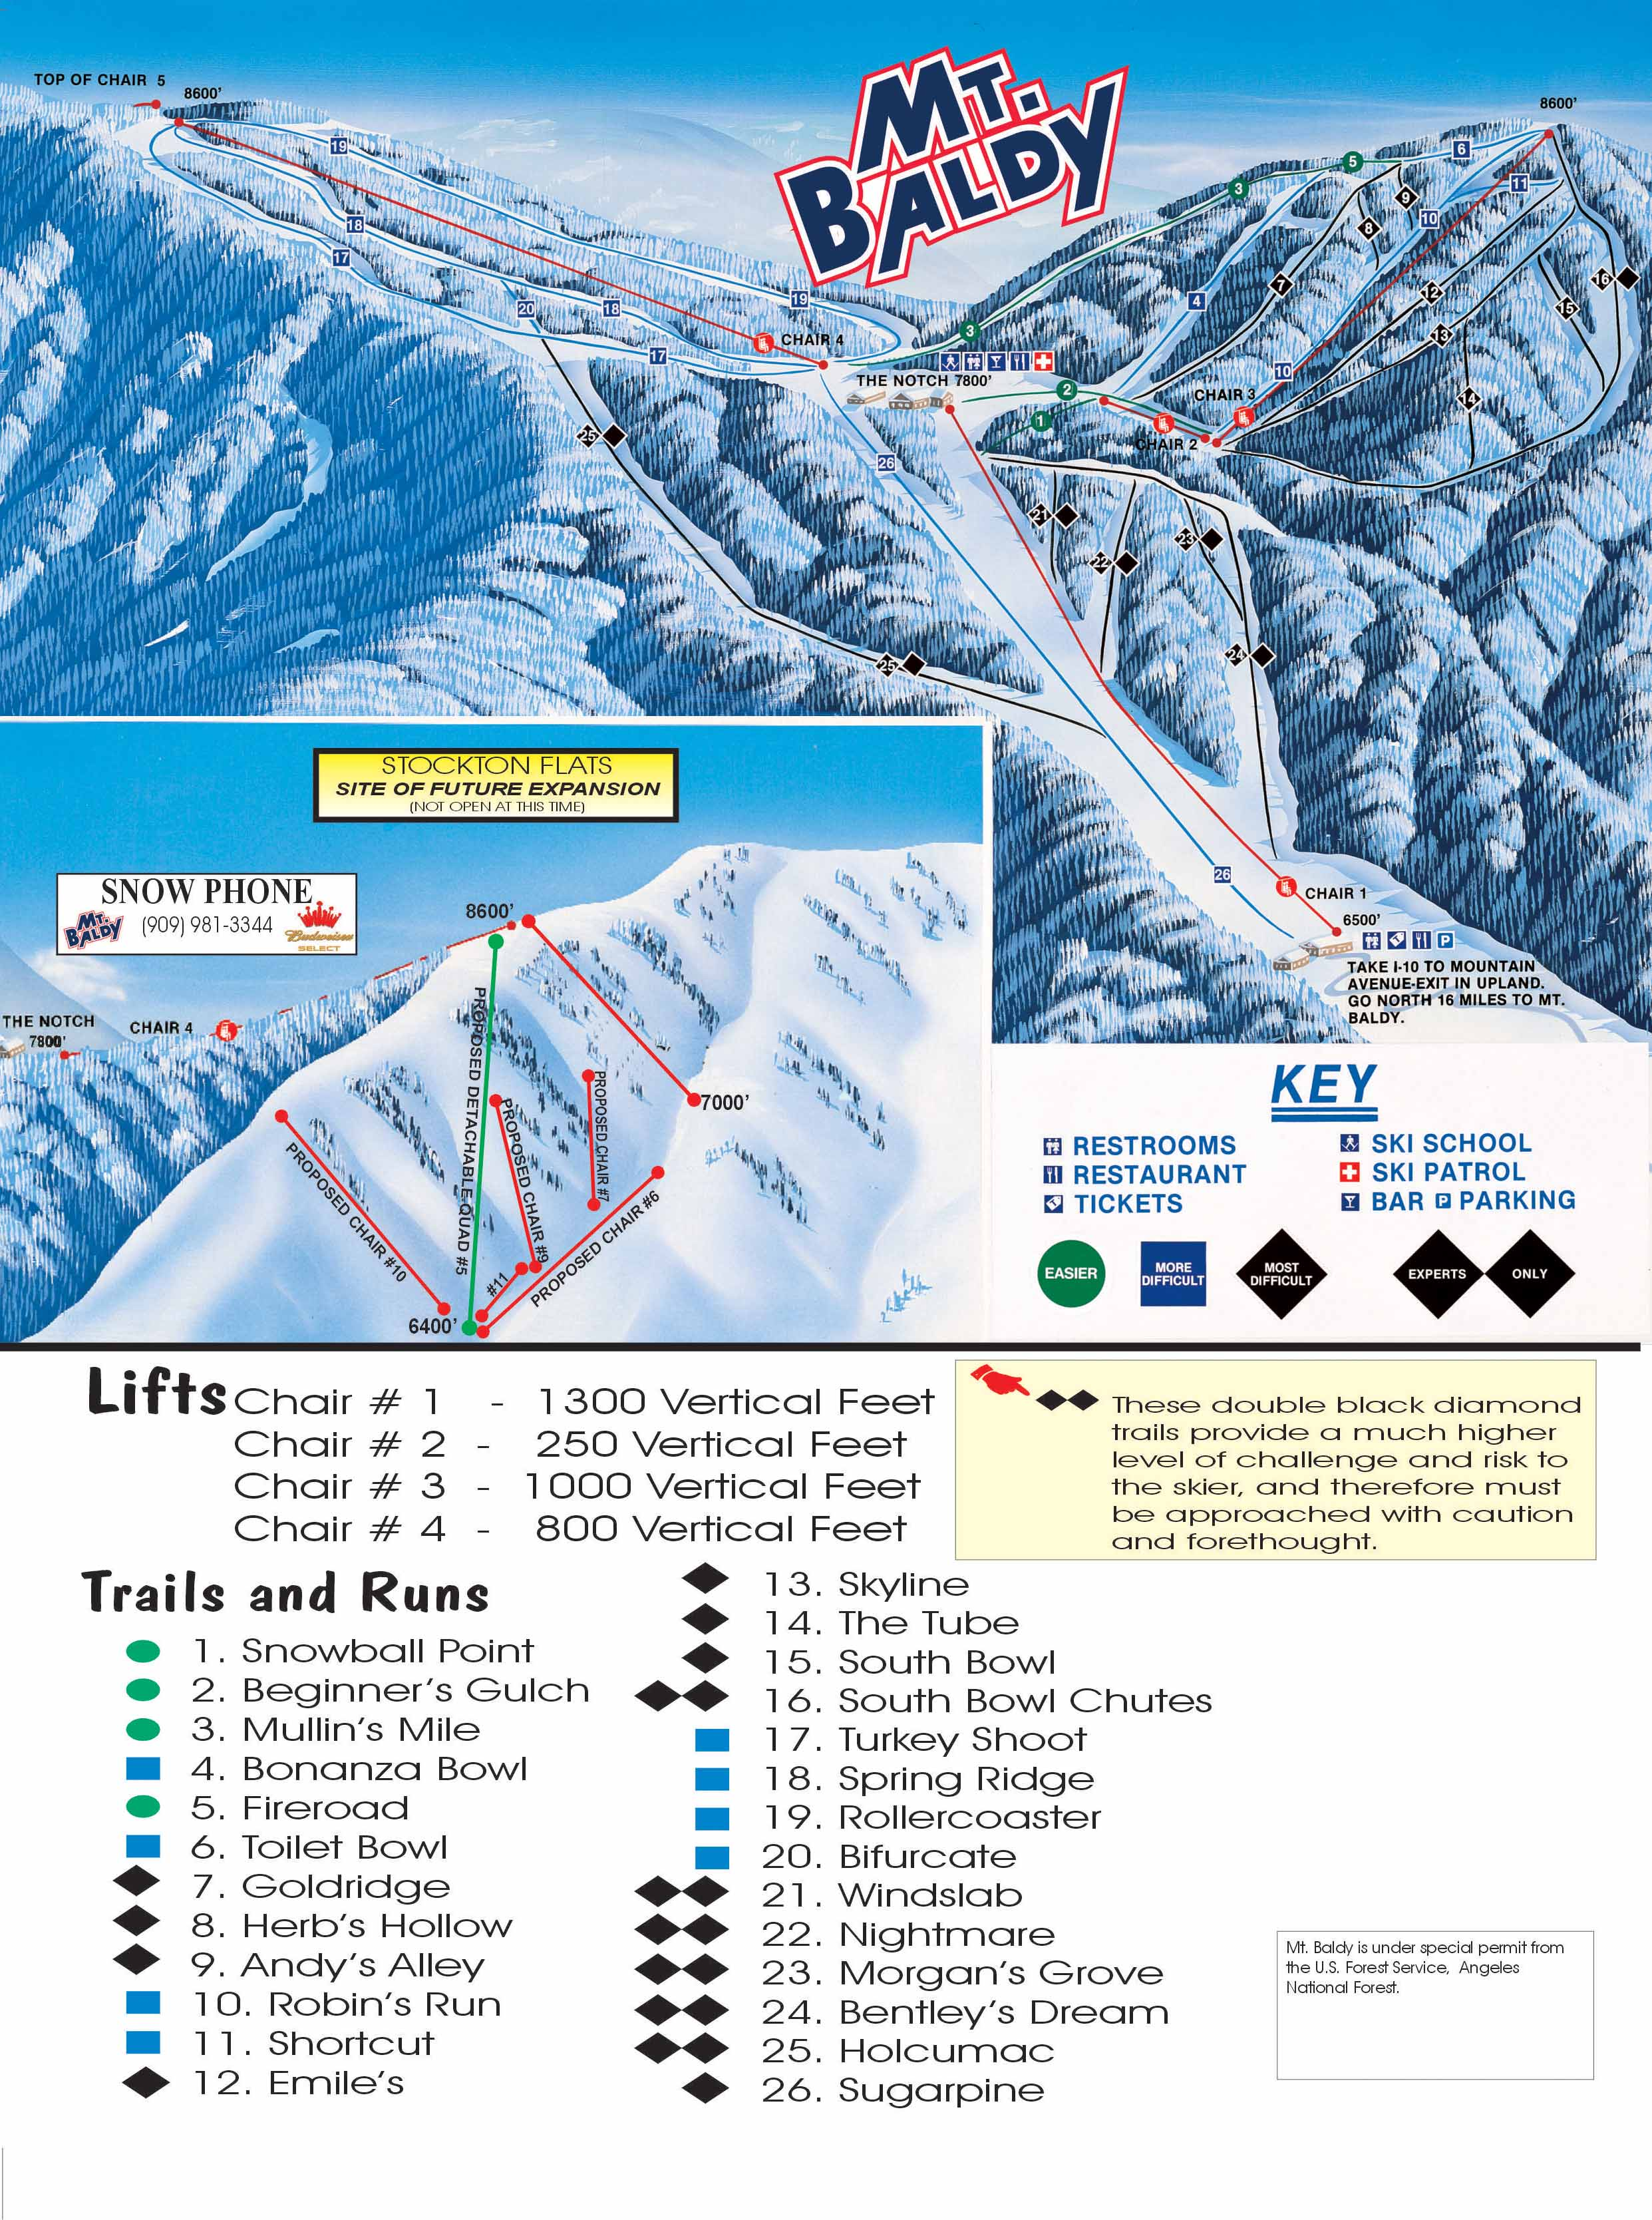 ski resort info, reviews and guides, snow reports, skiing and